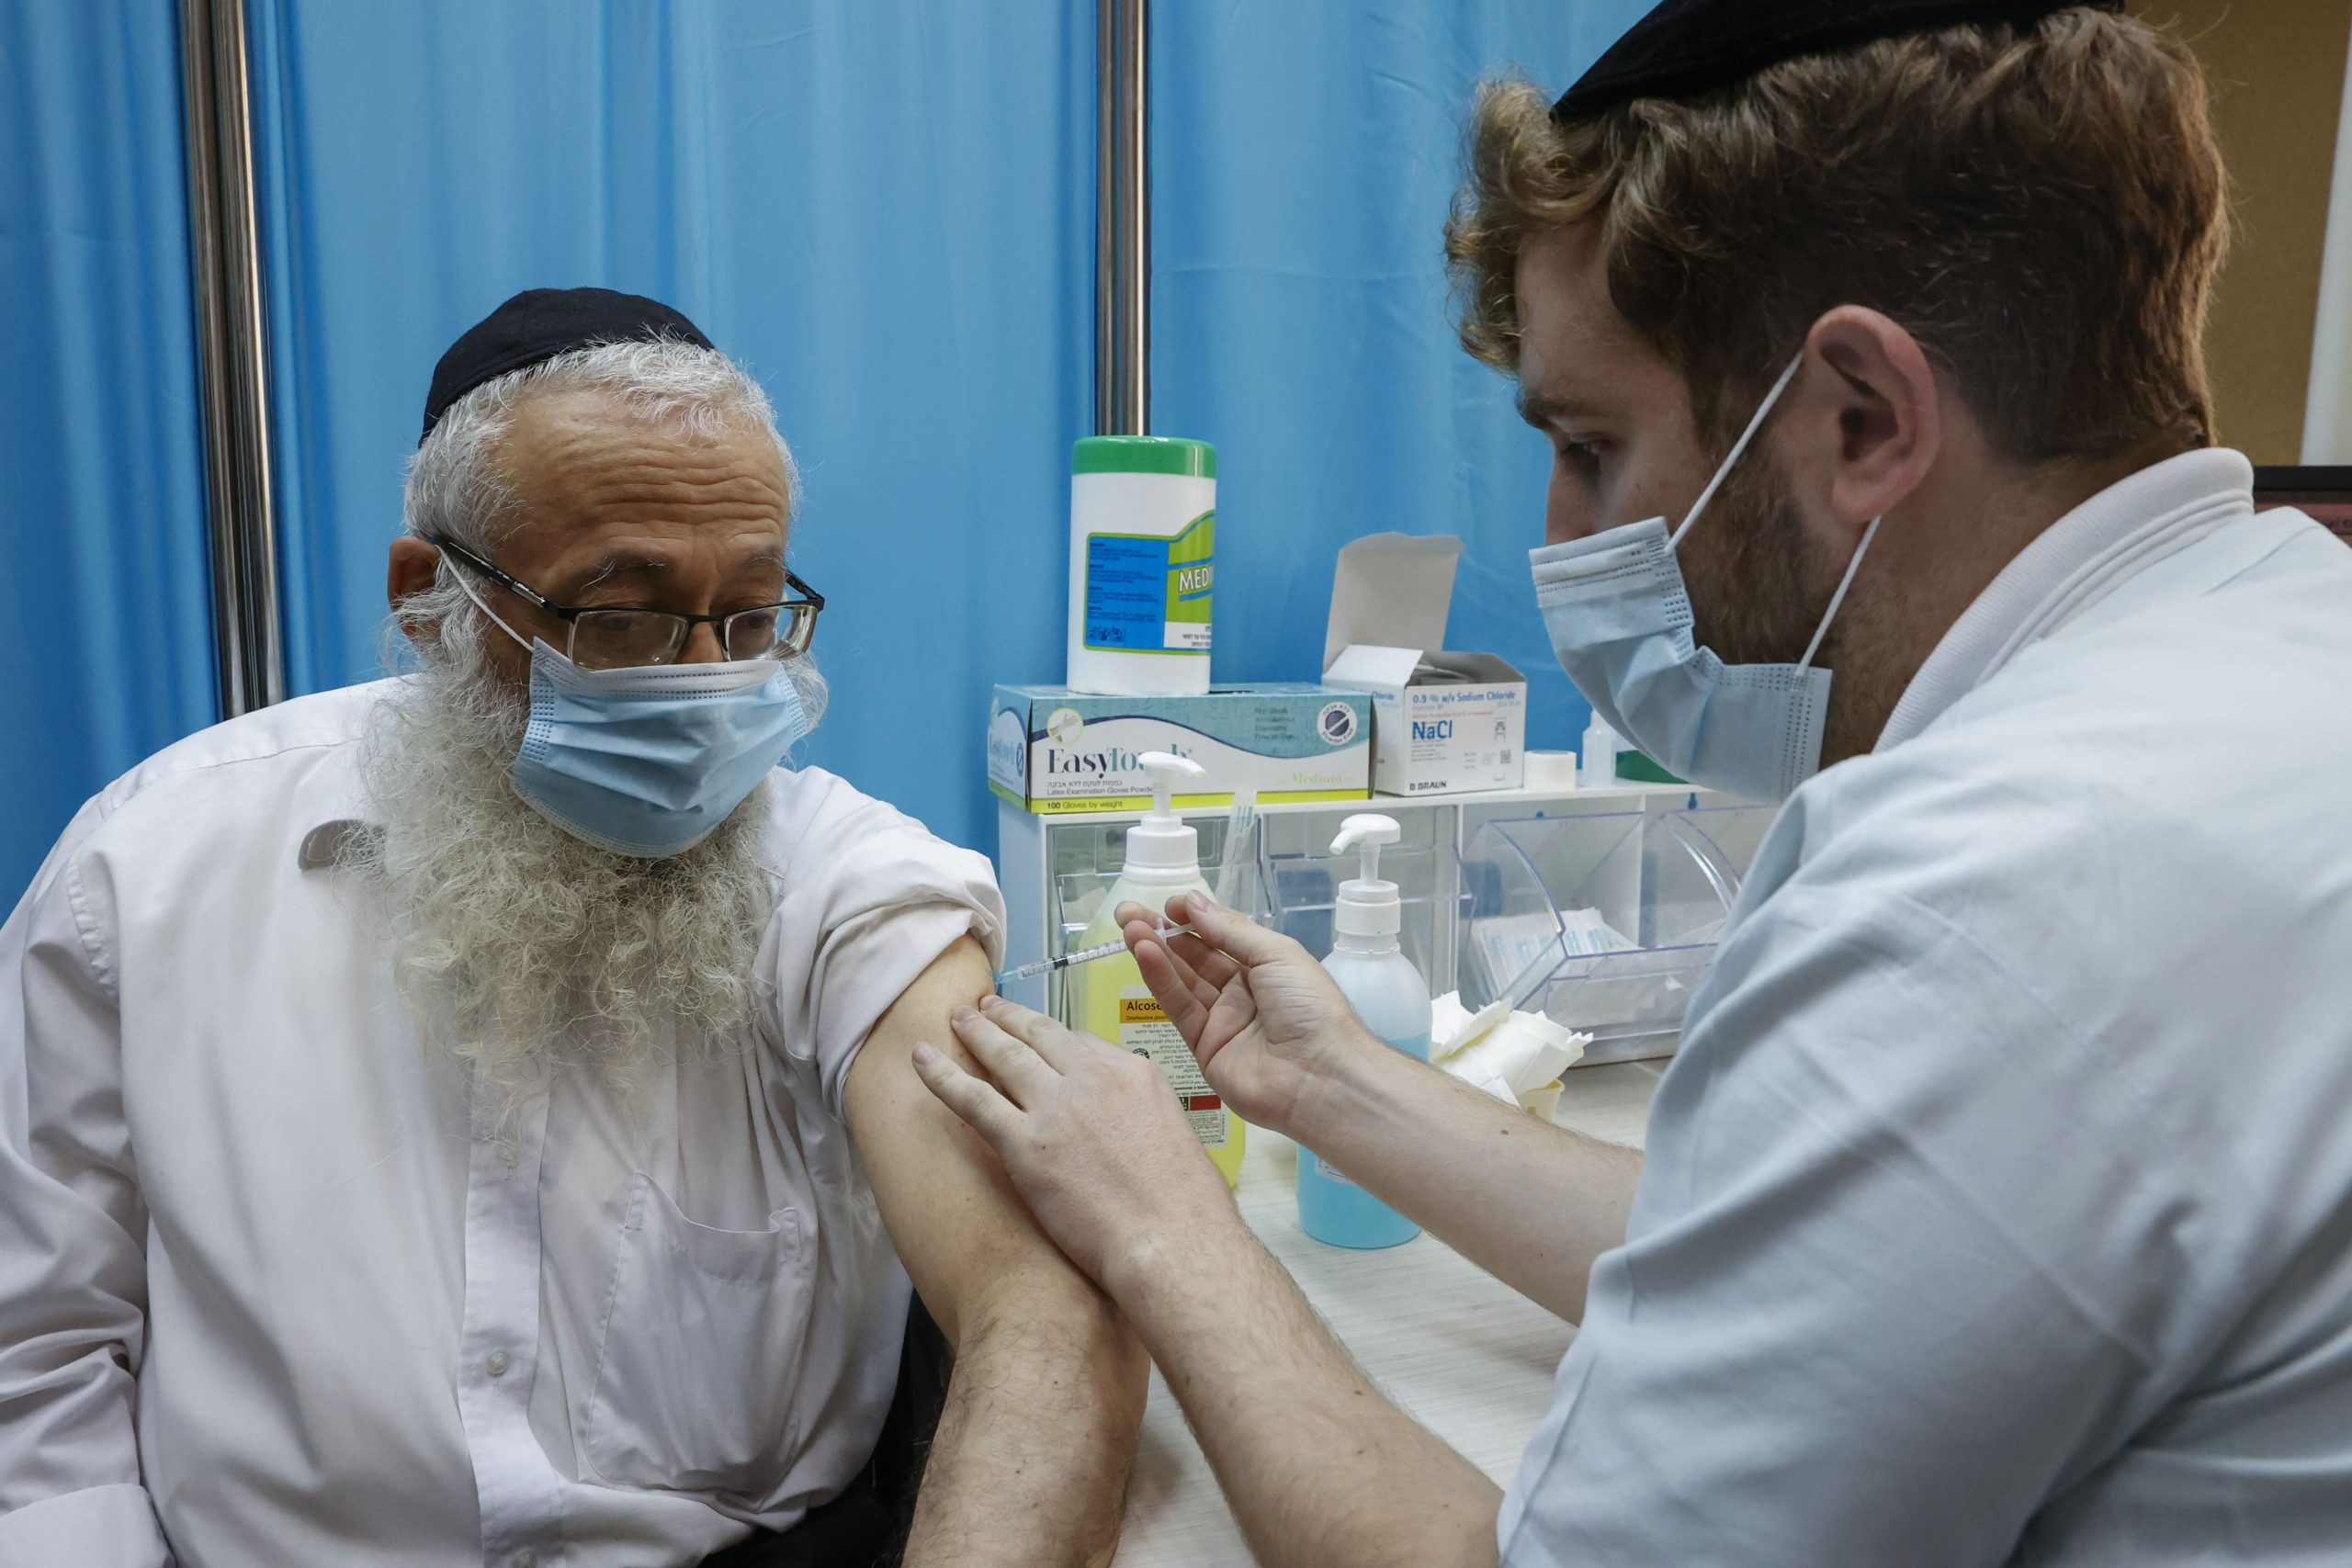 israel-is-launching-covid-immunity-passports-for-vaccinated-citizens